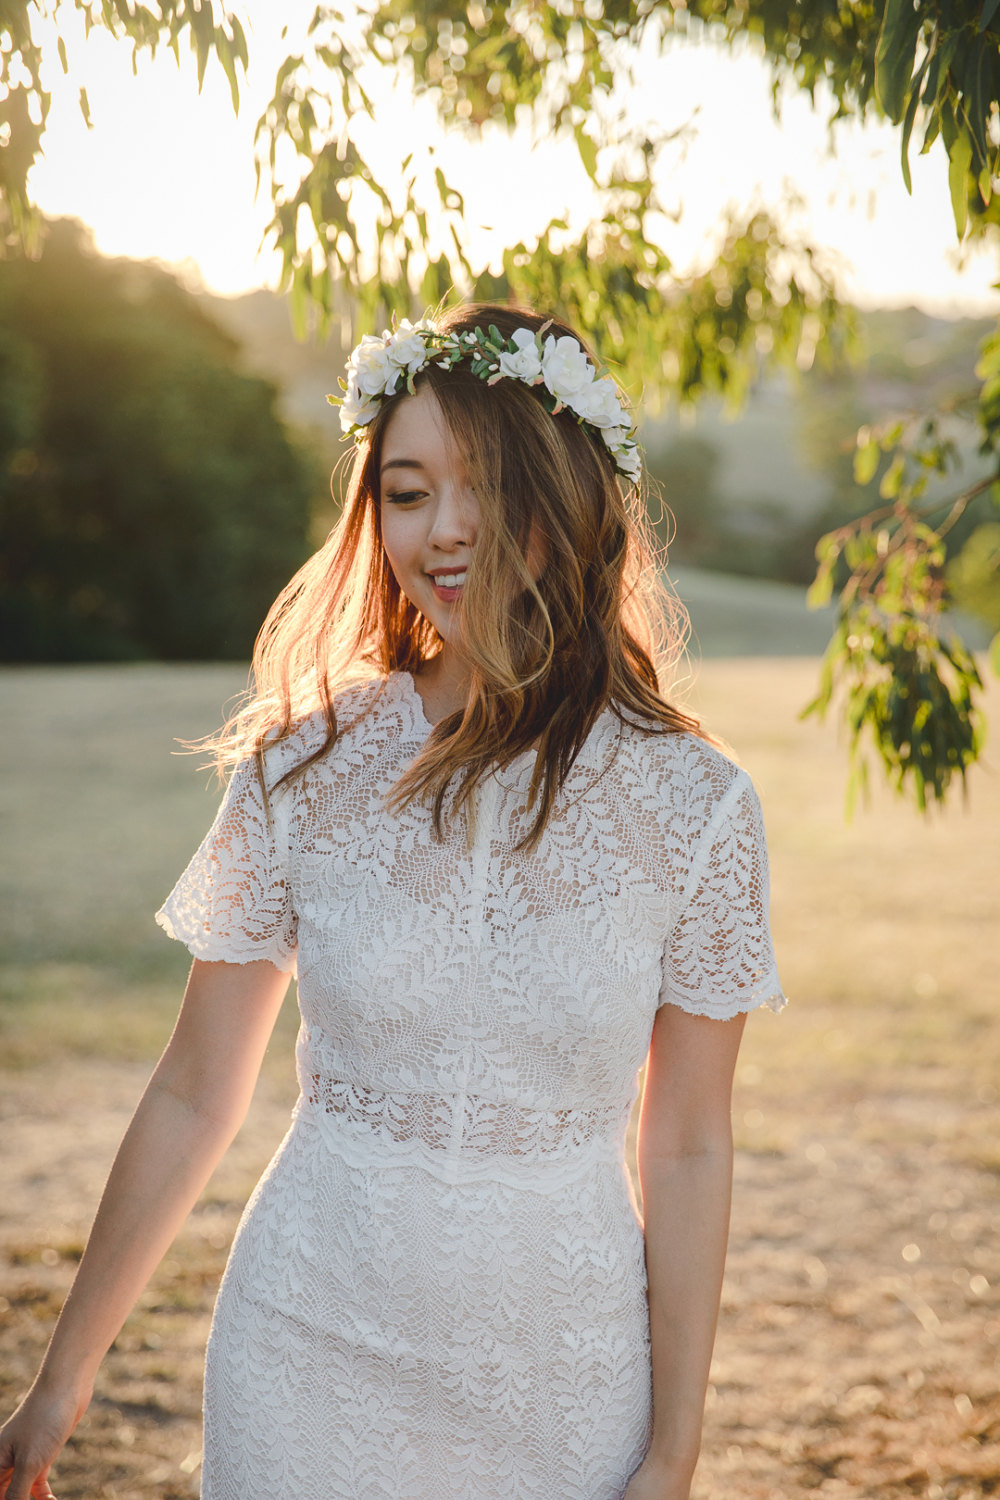 Fabulous Flower Crowns - The Perfect Bridal Hair Accessory : Chic ...